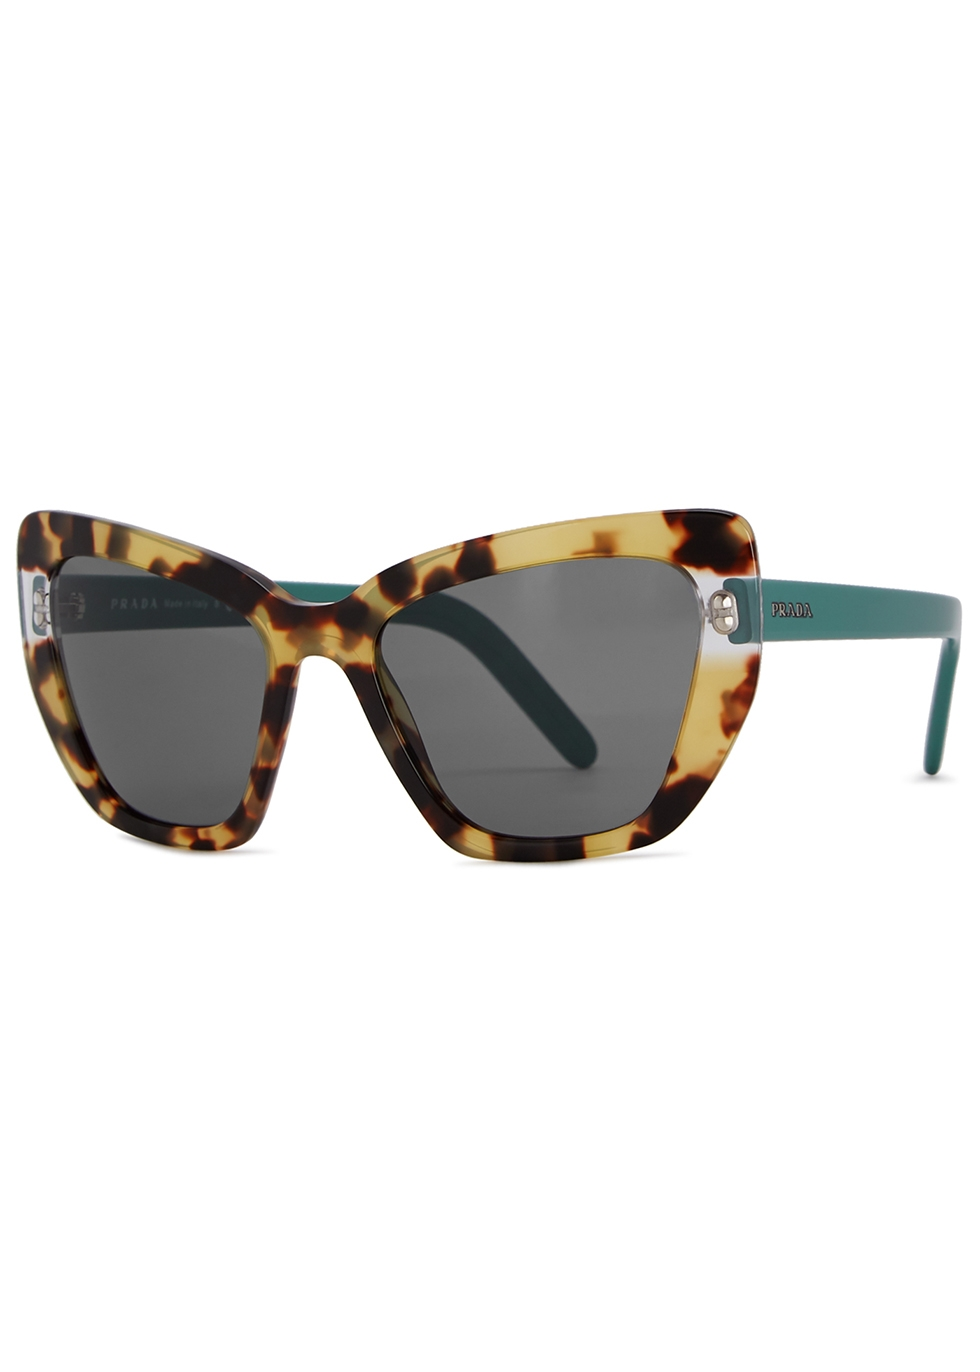 3134abf64b6 Women s Designer Sunglasses and Eyewear - Harvey Nichols